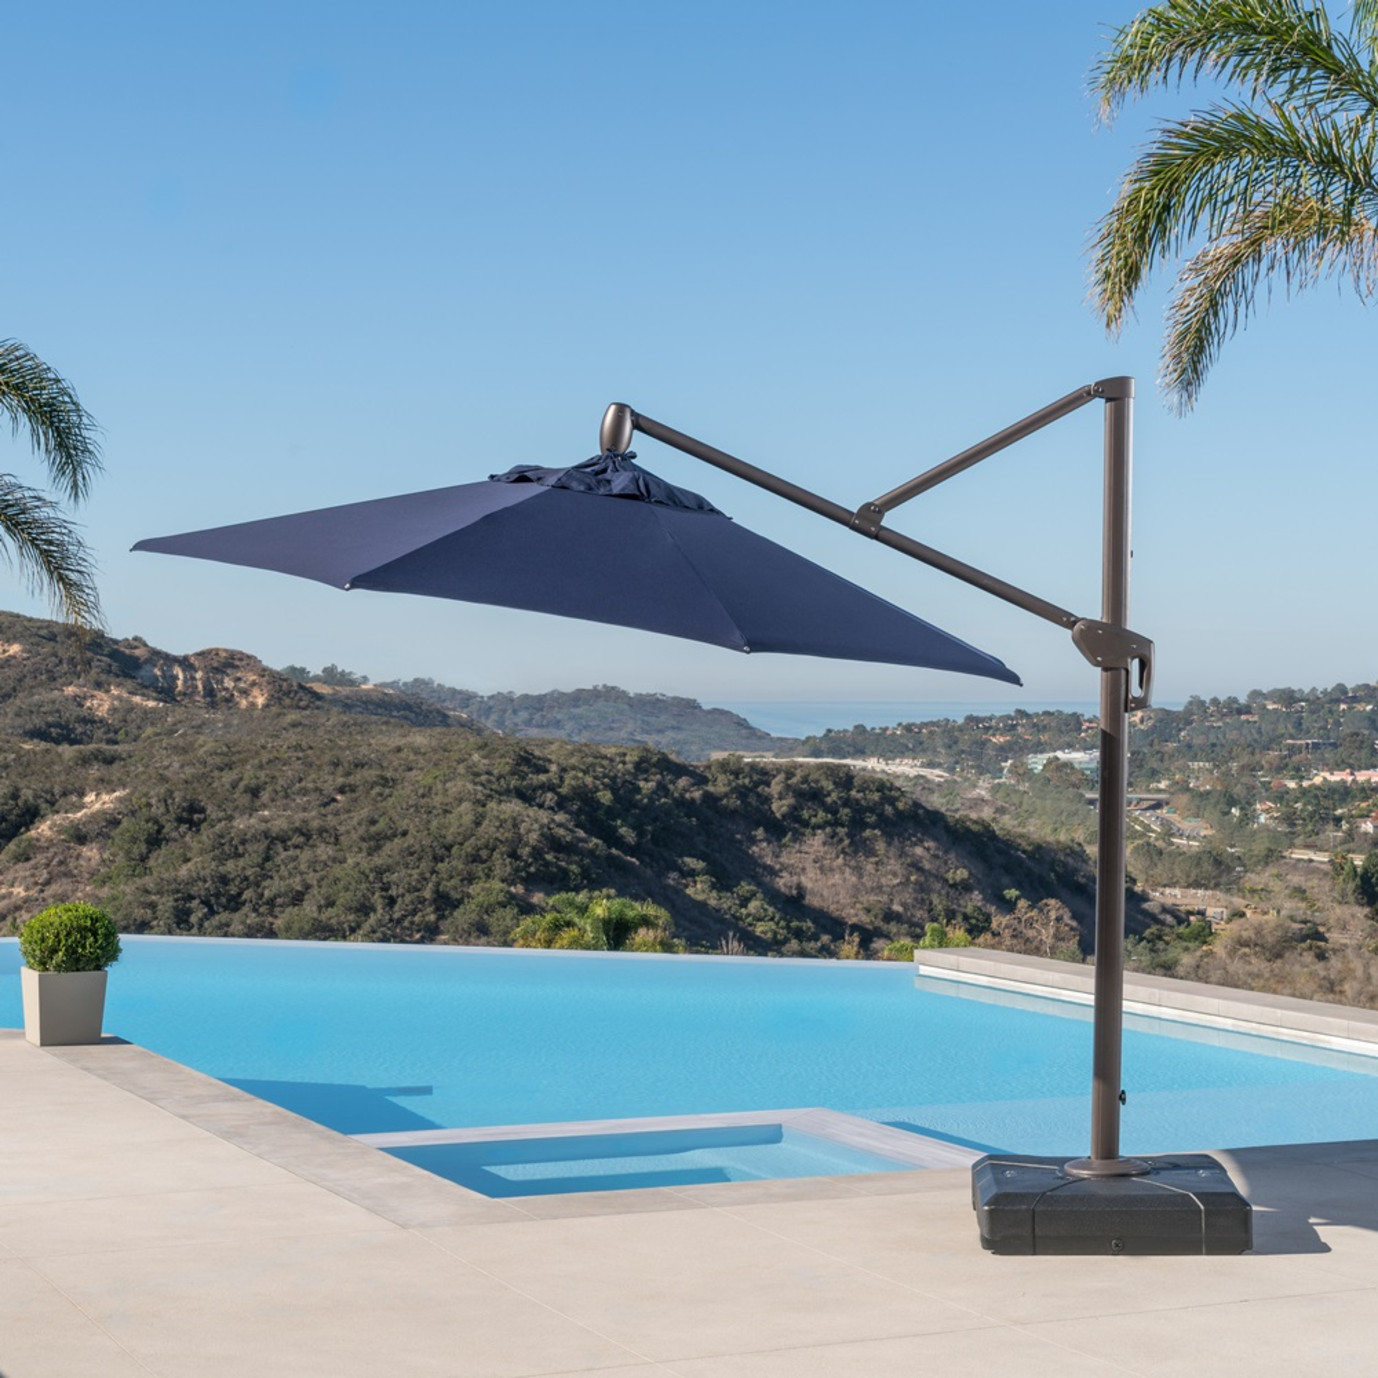 Modular Outdoor 10' Round Umbrella - Navy Blue